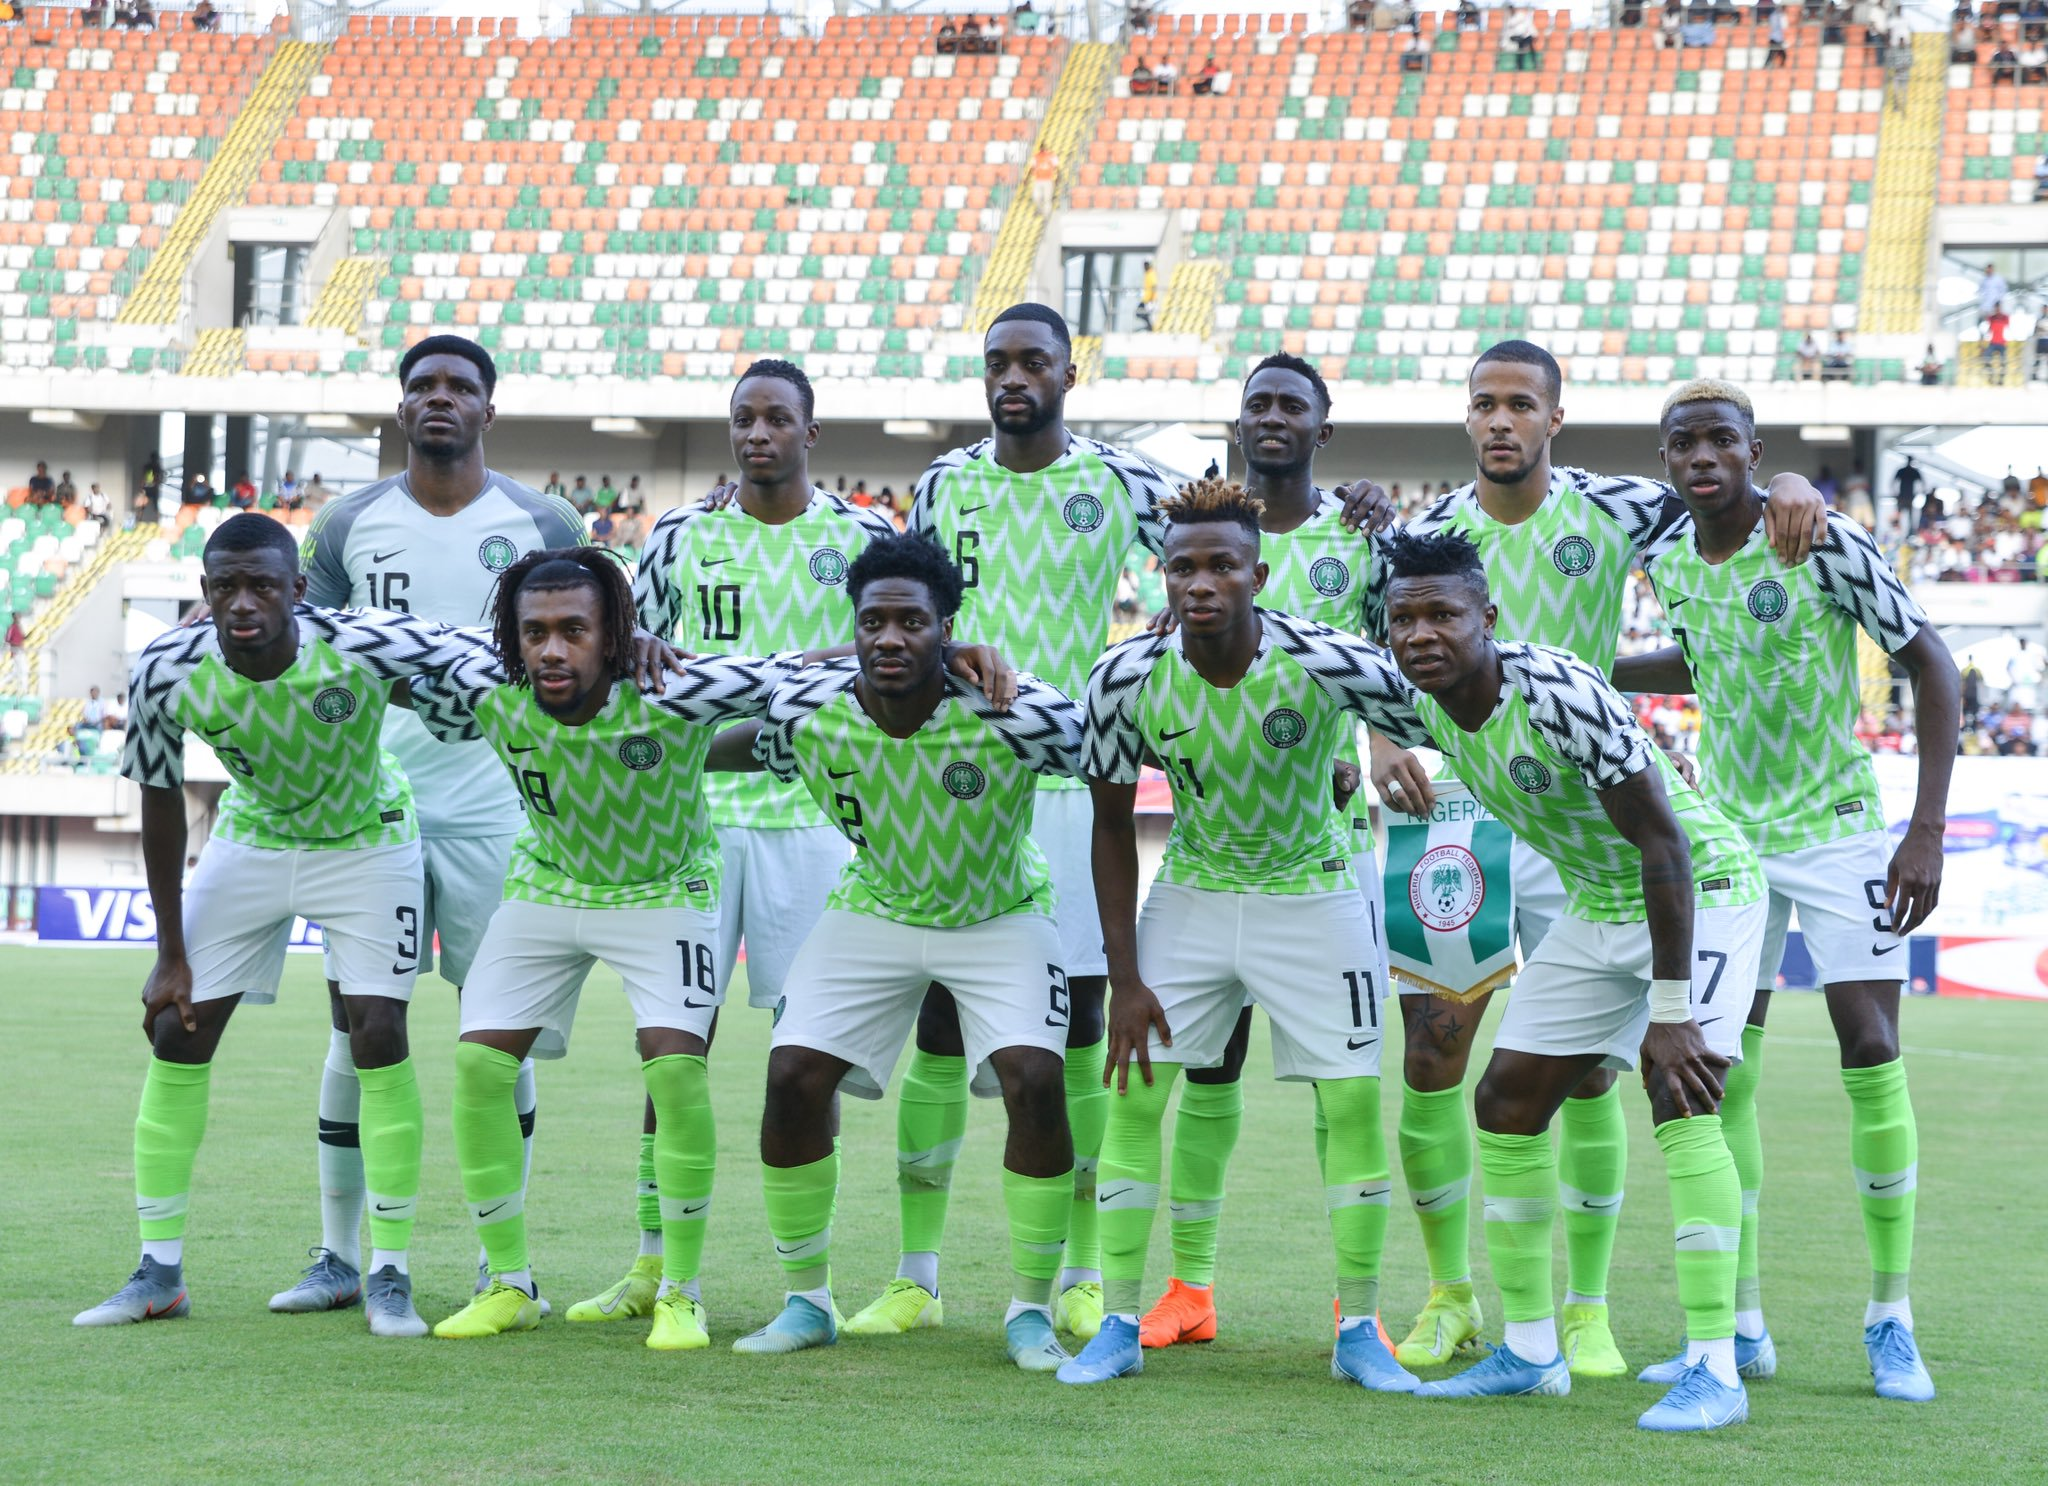 AFCON 2021: NIGERIA OVERCOME STUBBORN SQUIRRELS